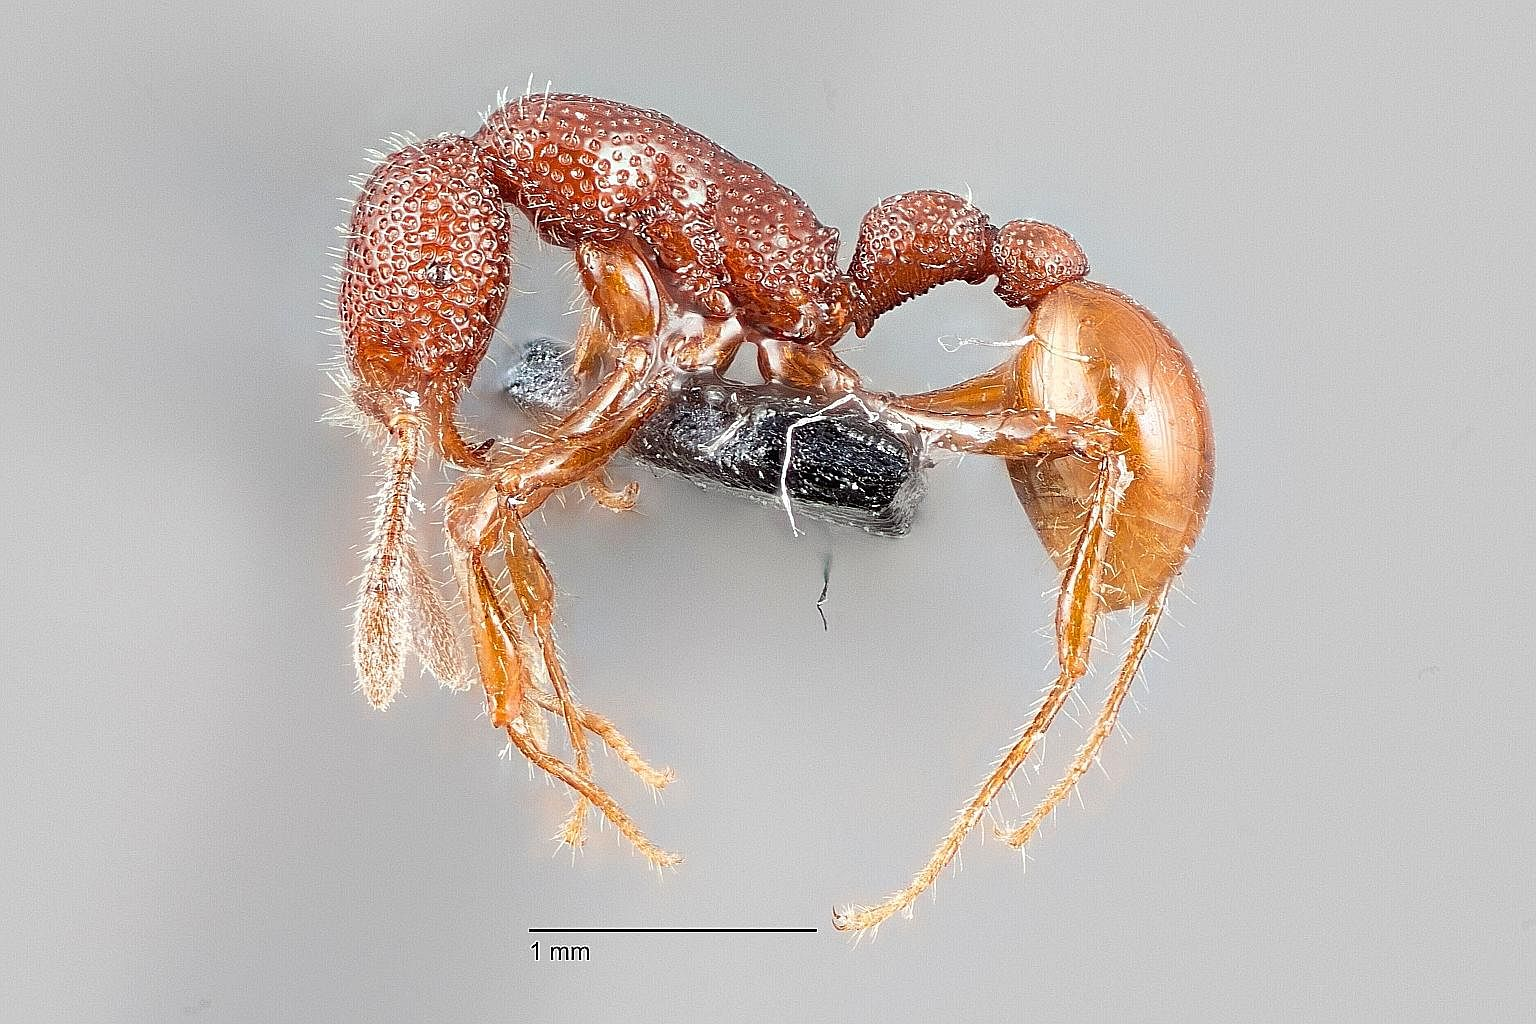 The Johora singaporensis, the Singapore freshwater crab, is not found anywhere else in the world, while the Neptune's cup sponge, thought to be extinct, was rediscovered in local waters in 2011. Research is ongoing in Singapore to help scientists lea